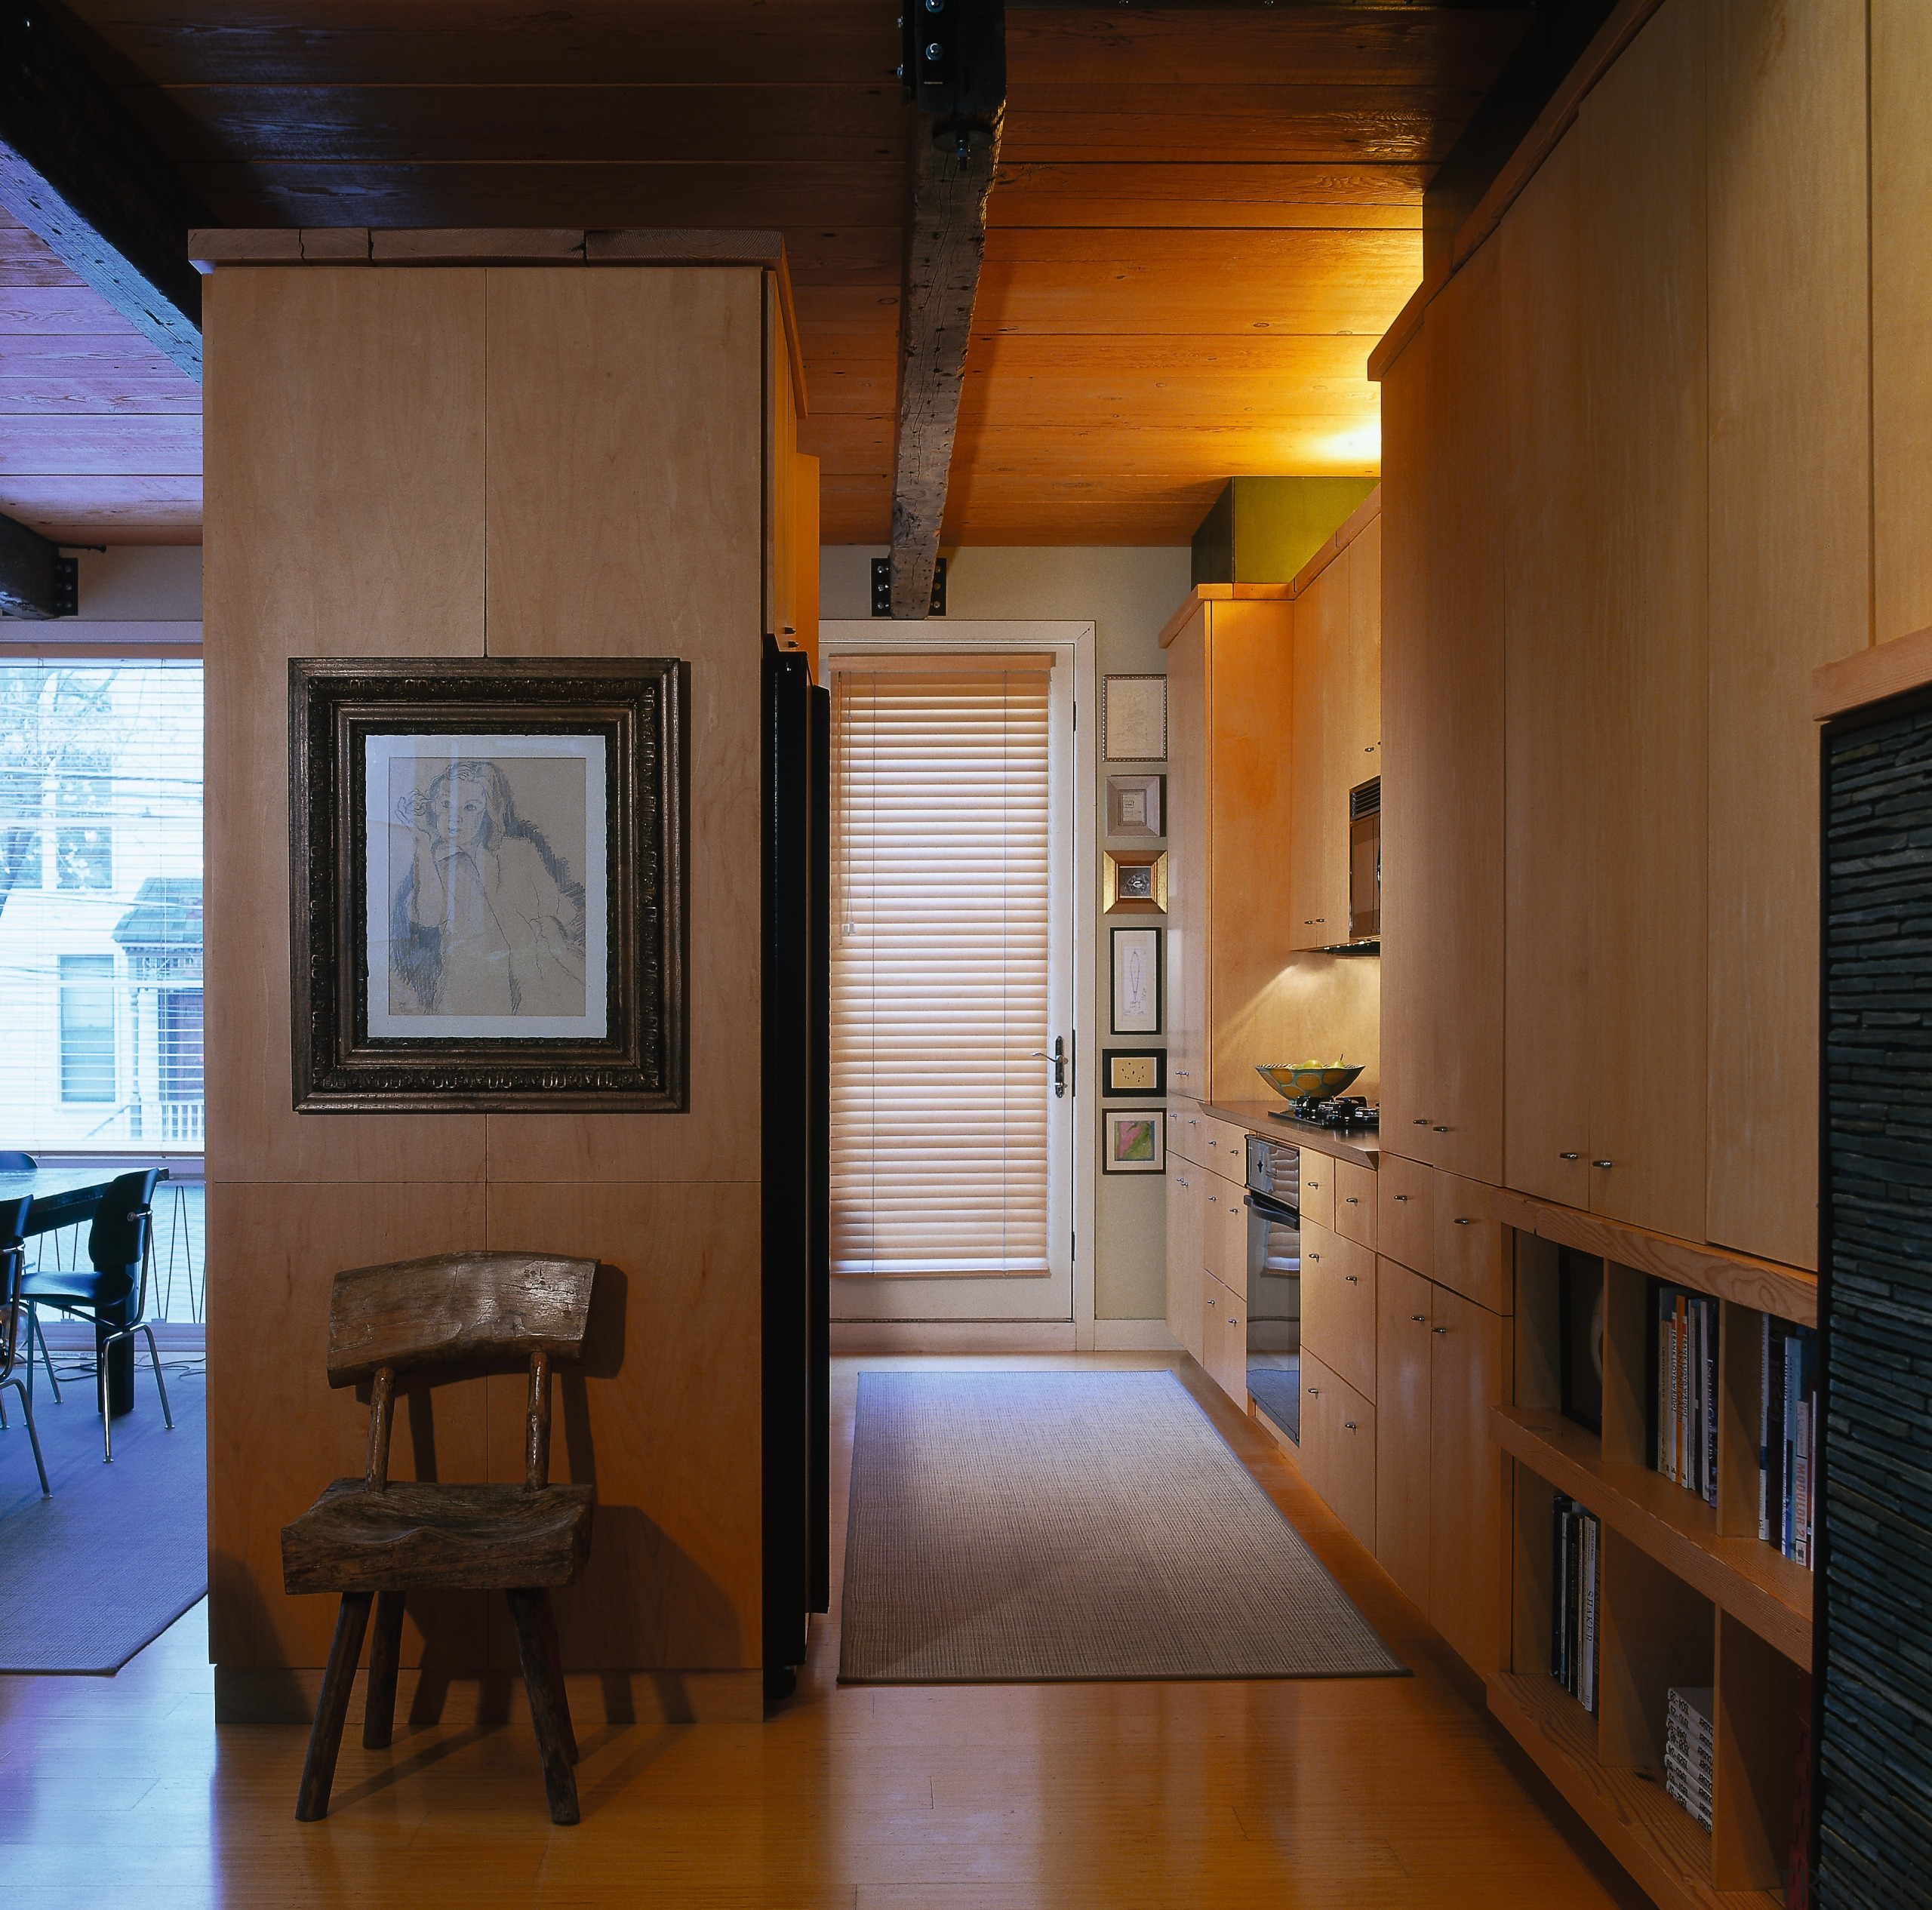 View of the kitcehn hallway, wooden flooring, rug, architecture, ceiling, home, house, interior design, loft, room, window, wood, brown, black